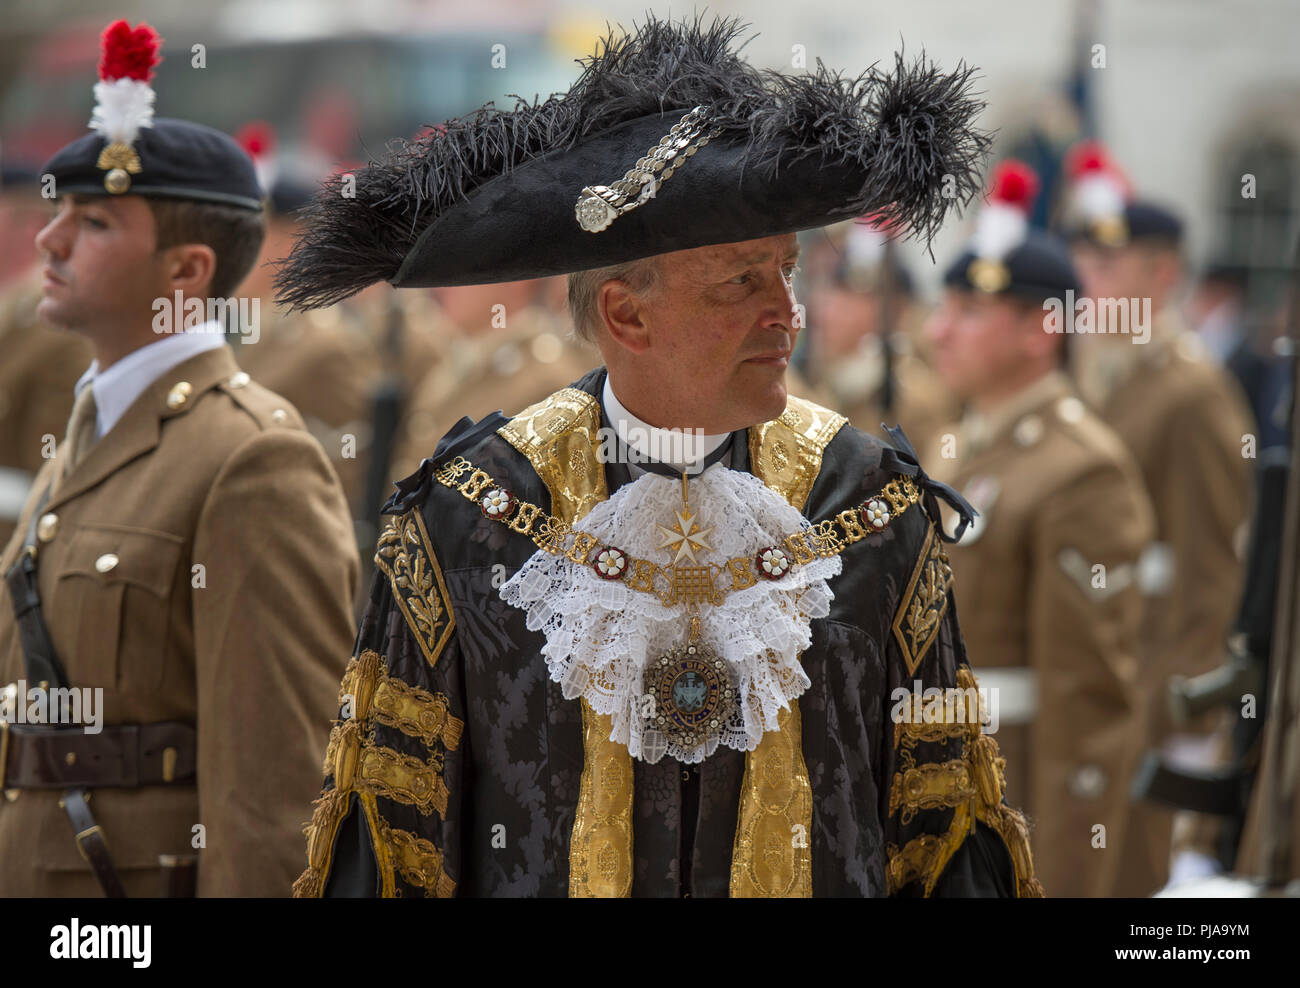 City of London, UK. 5 September, 2018. The Royal Regiment of Fusiliers exercise their right to march through the Square Mile as one of the City of London's Privileged Regiments to celebrate their 50th anniversary. These privileges allow the Regiment to exercise its right to march through the City with drums beating, colours flying and bayonets fixed in a parade from the Tower of London to the Guildhall. Alderman Charles Bowman, the 690th Lord Mayor of the City of London, takes part in the troop inspection at Guildhall Yard. Credit: Malcolm Park/Alamy Live News. - Stock Image